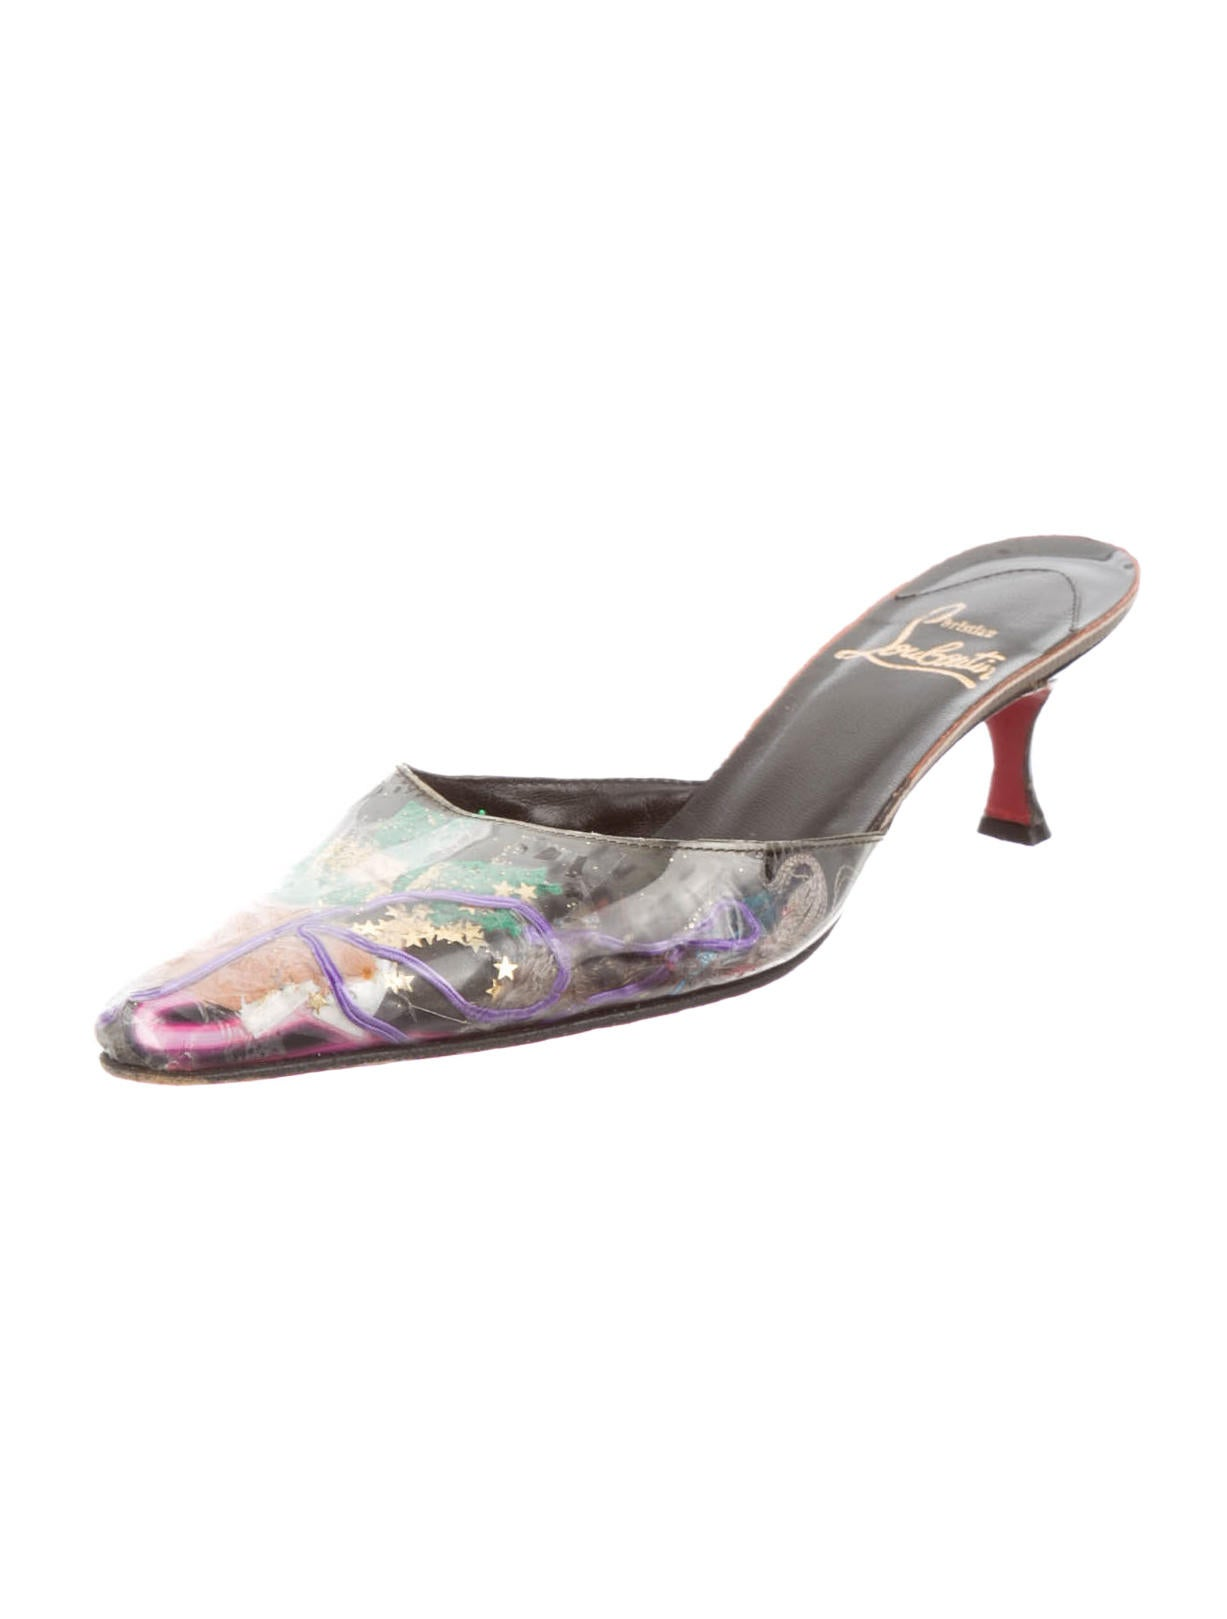 louboutin knock-off - Christian Louboutin Trash Collection Mules - Shoes - CHT36190 ...